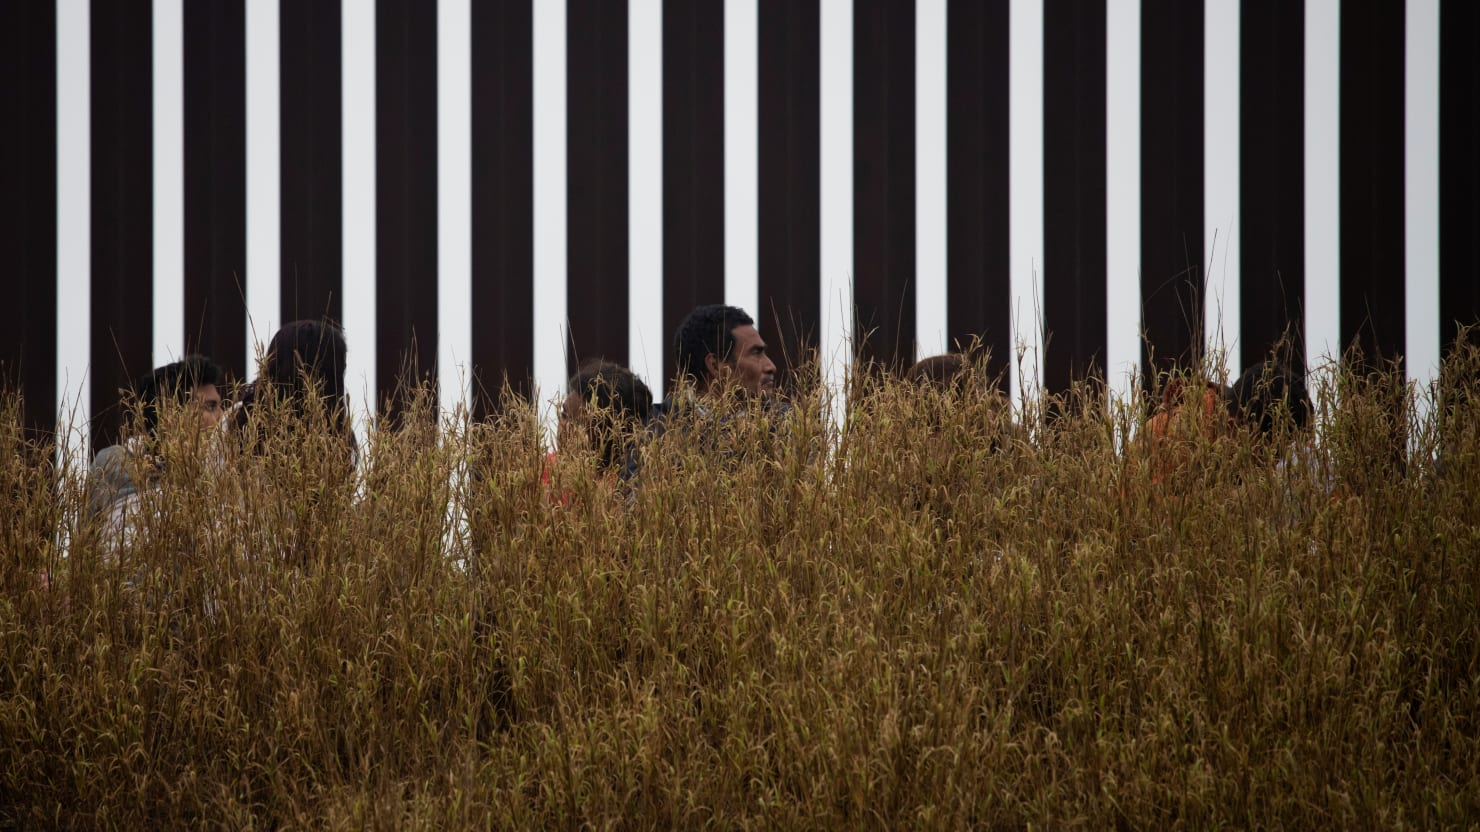 Judge Throws Out Trump Rule That Blocked Central American Asylum Seekers at Southern Border